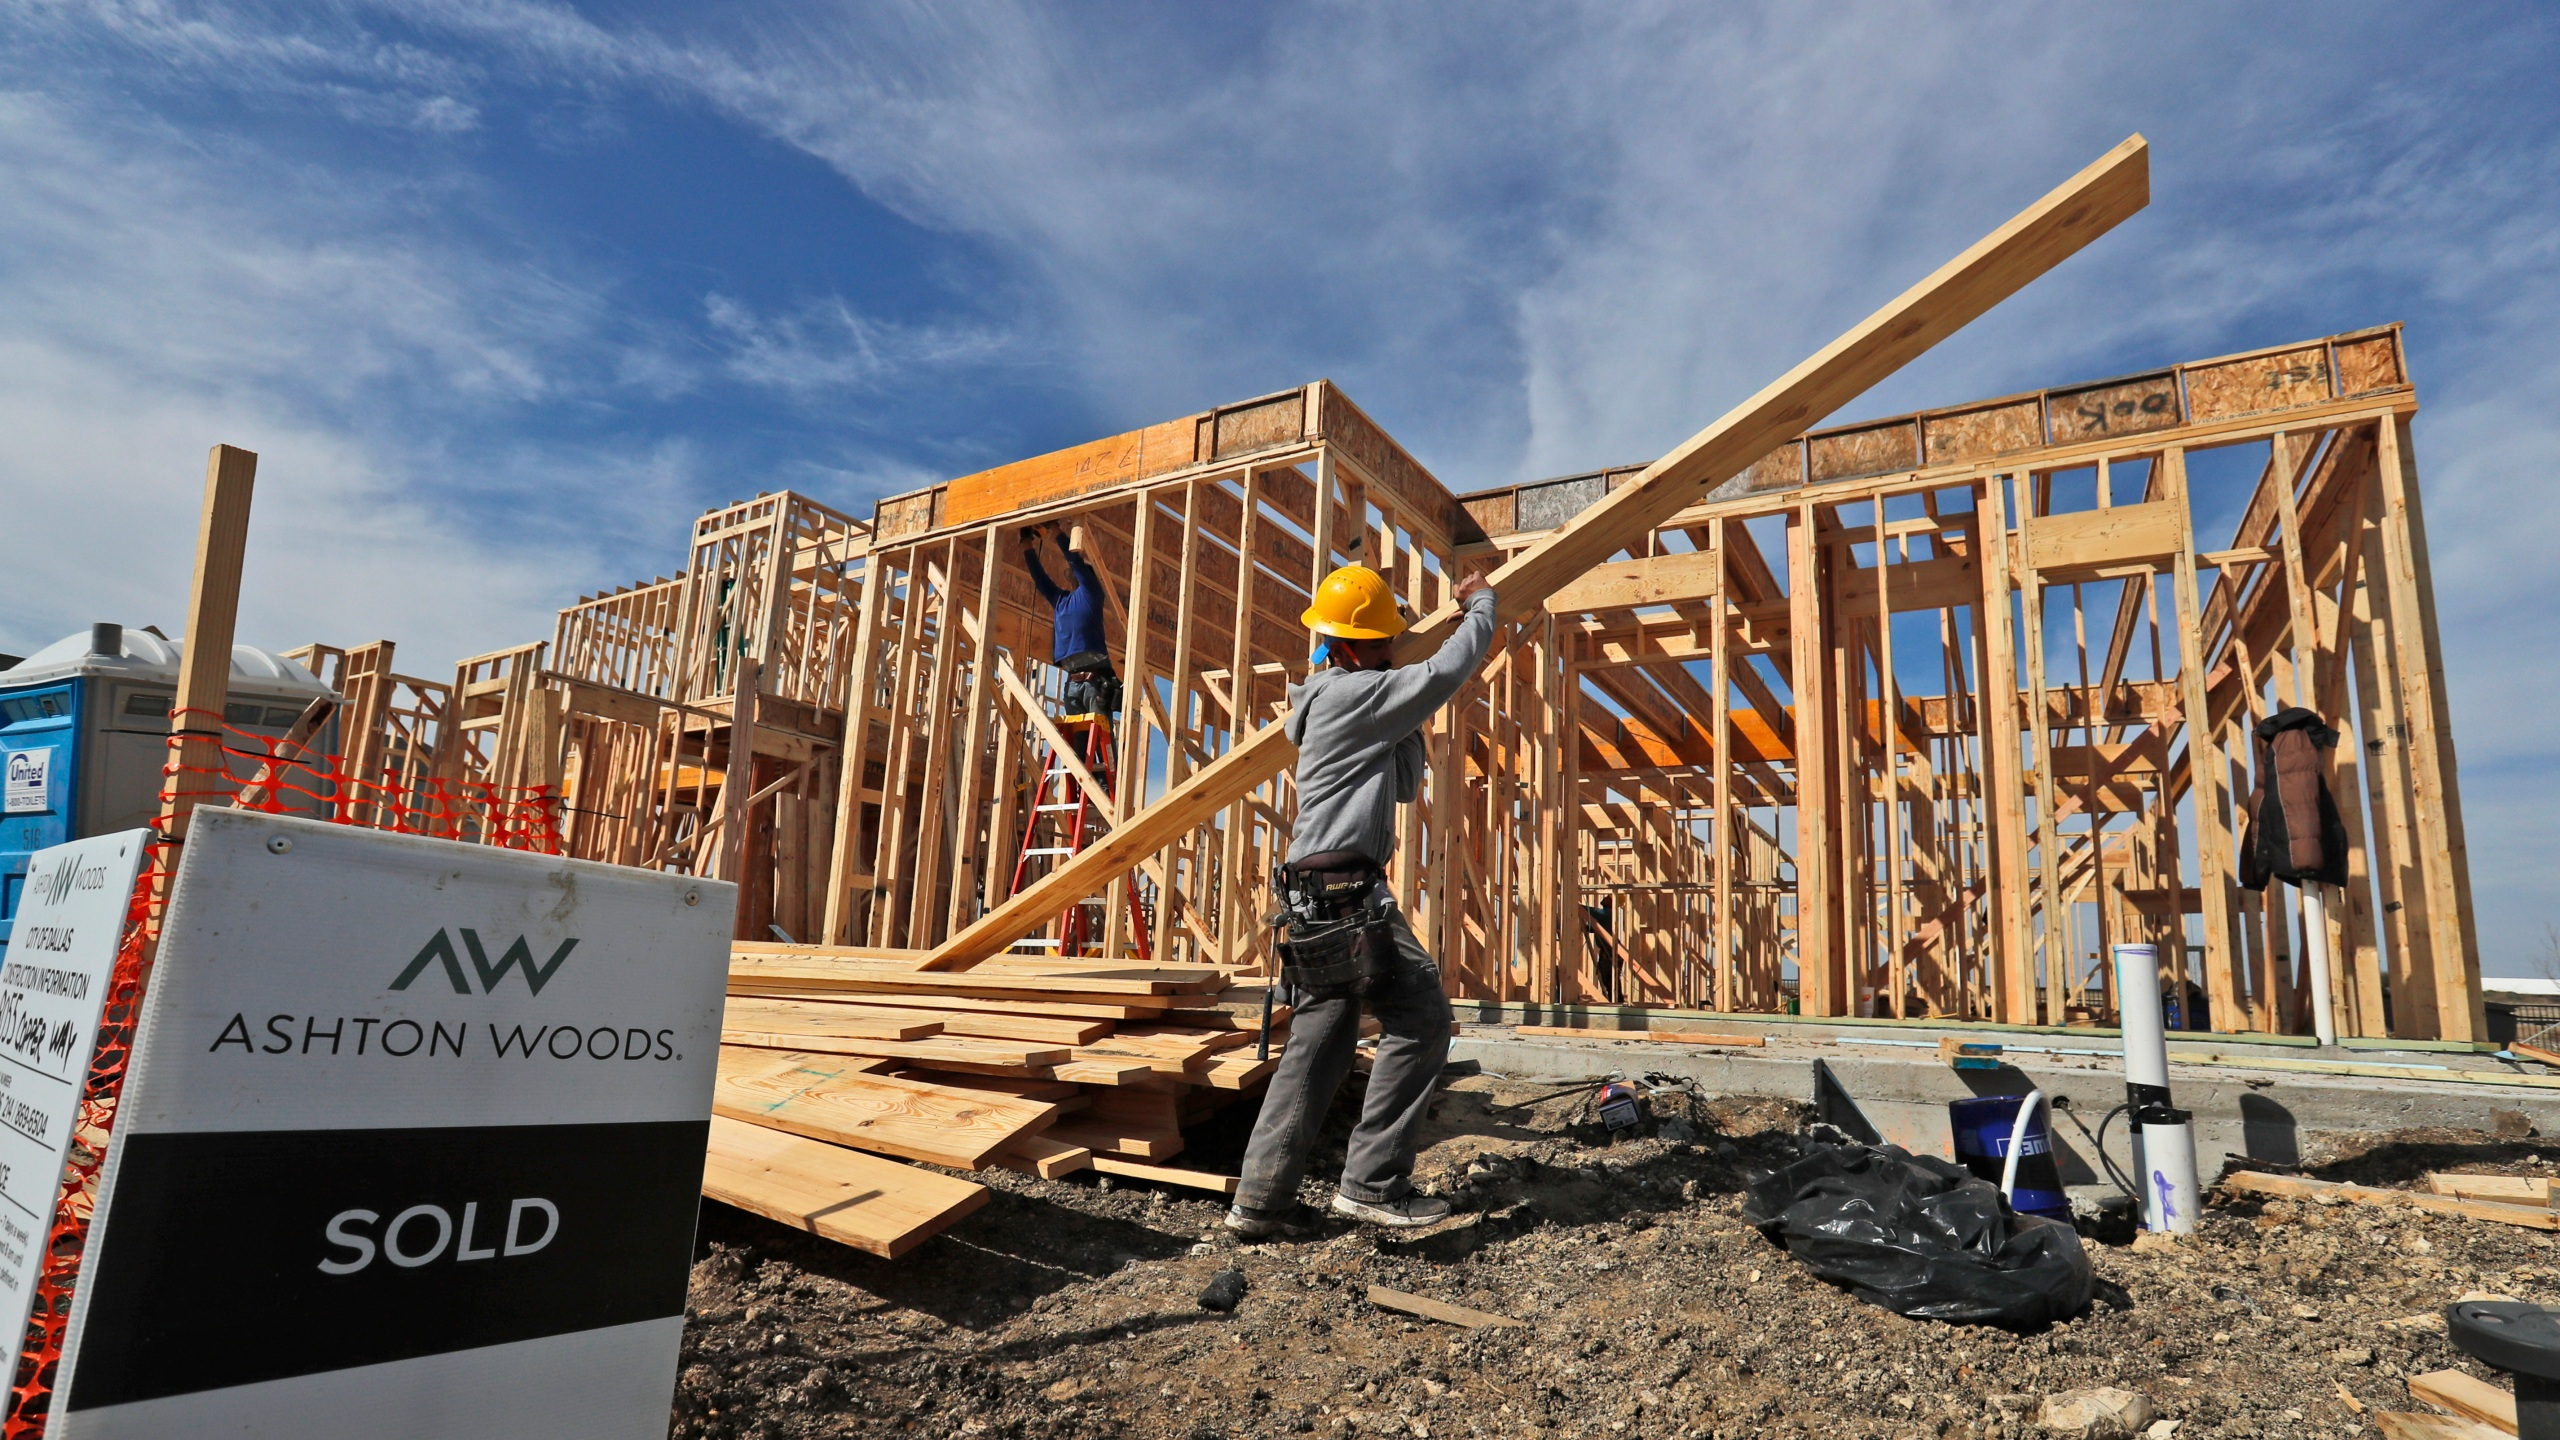 Home_Construction_32049-159532.jpg08979374